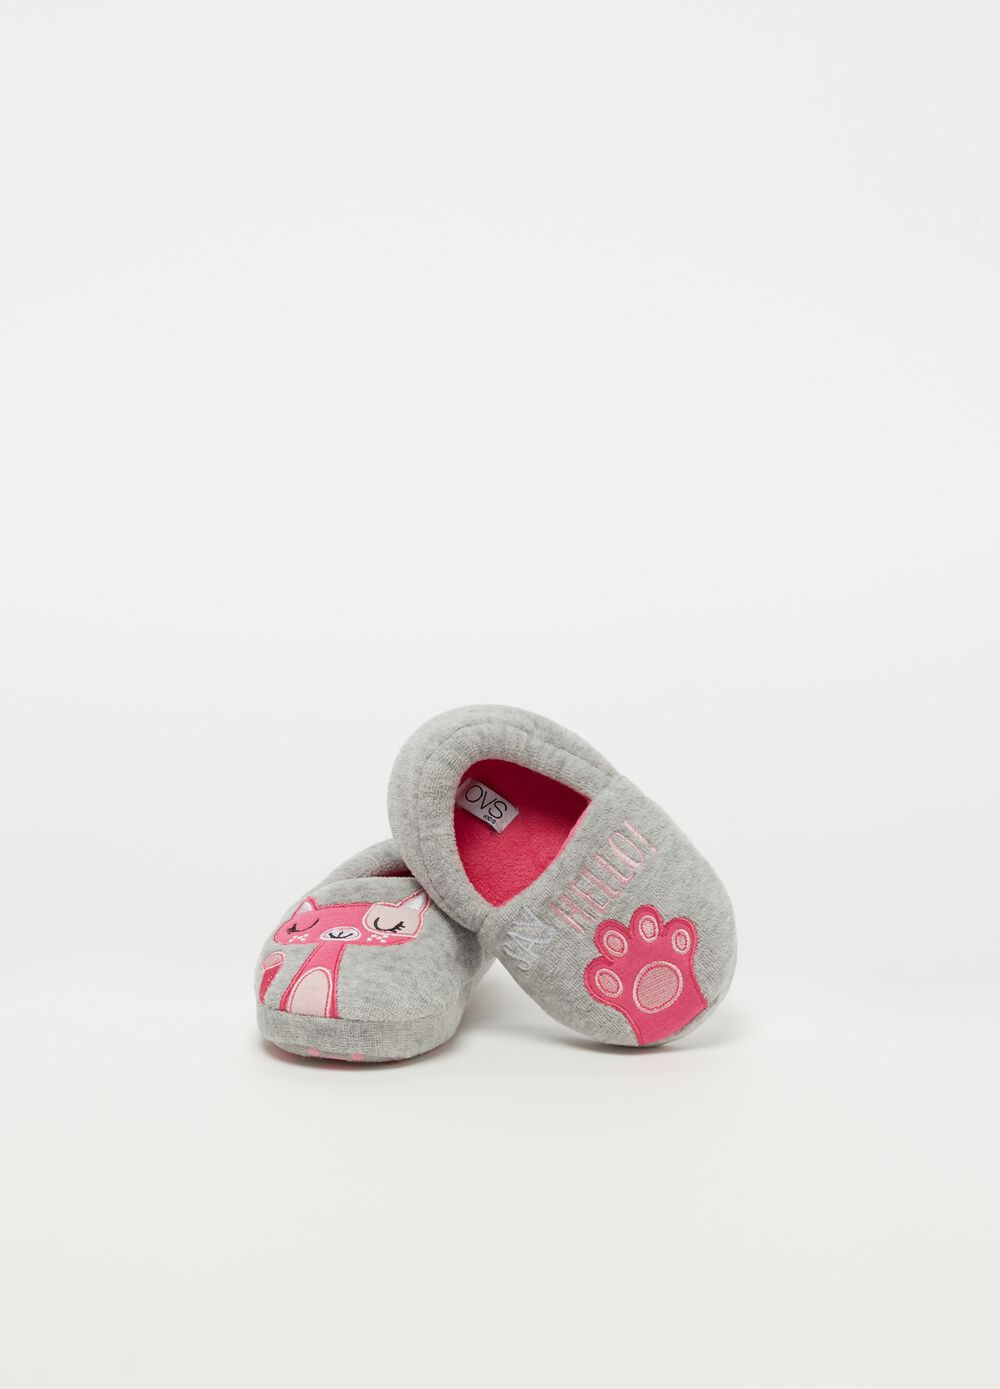 Non-slip slippers with kitten embroidery